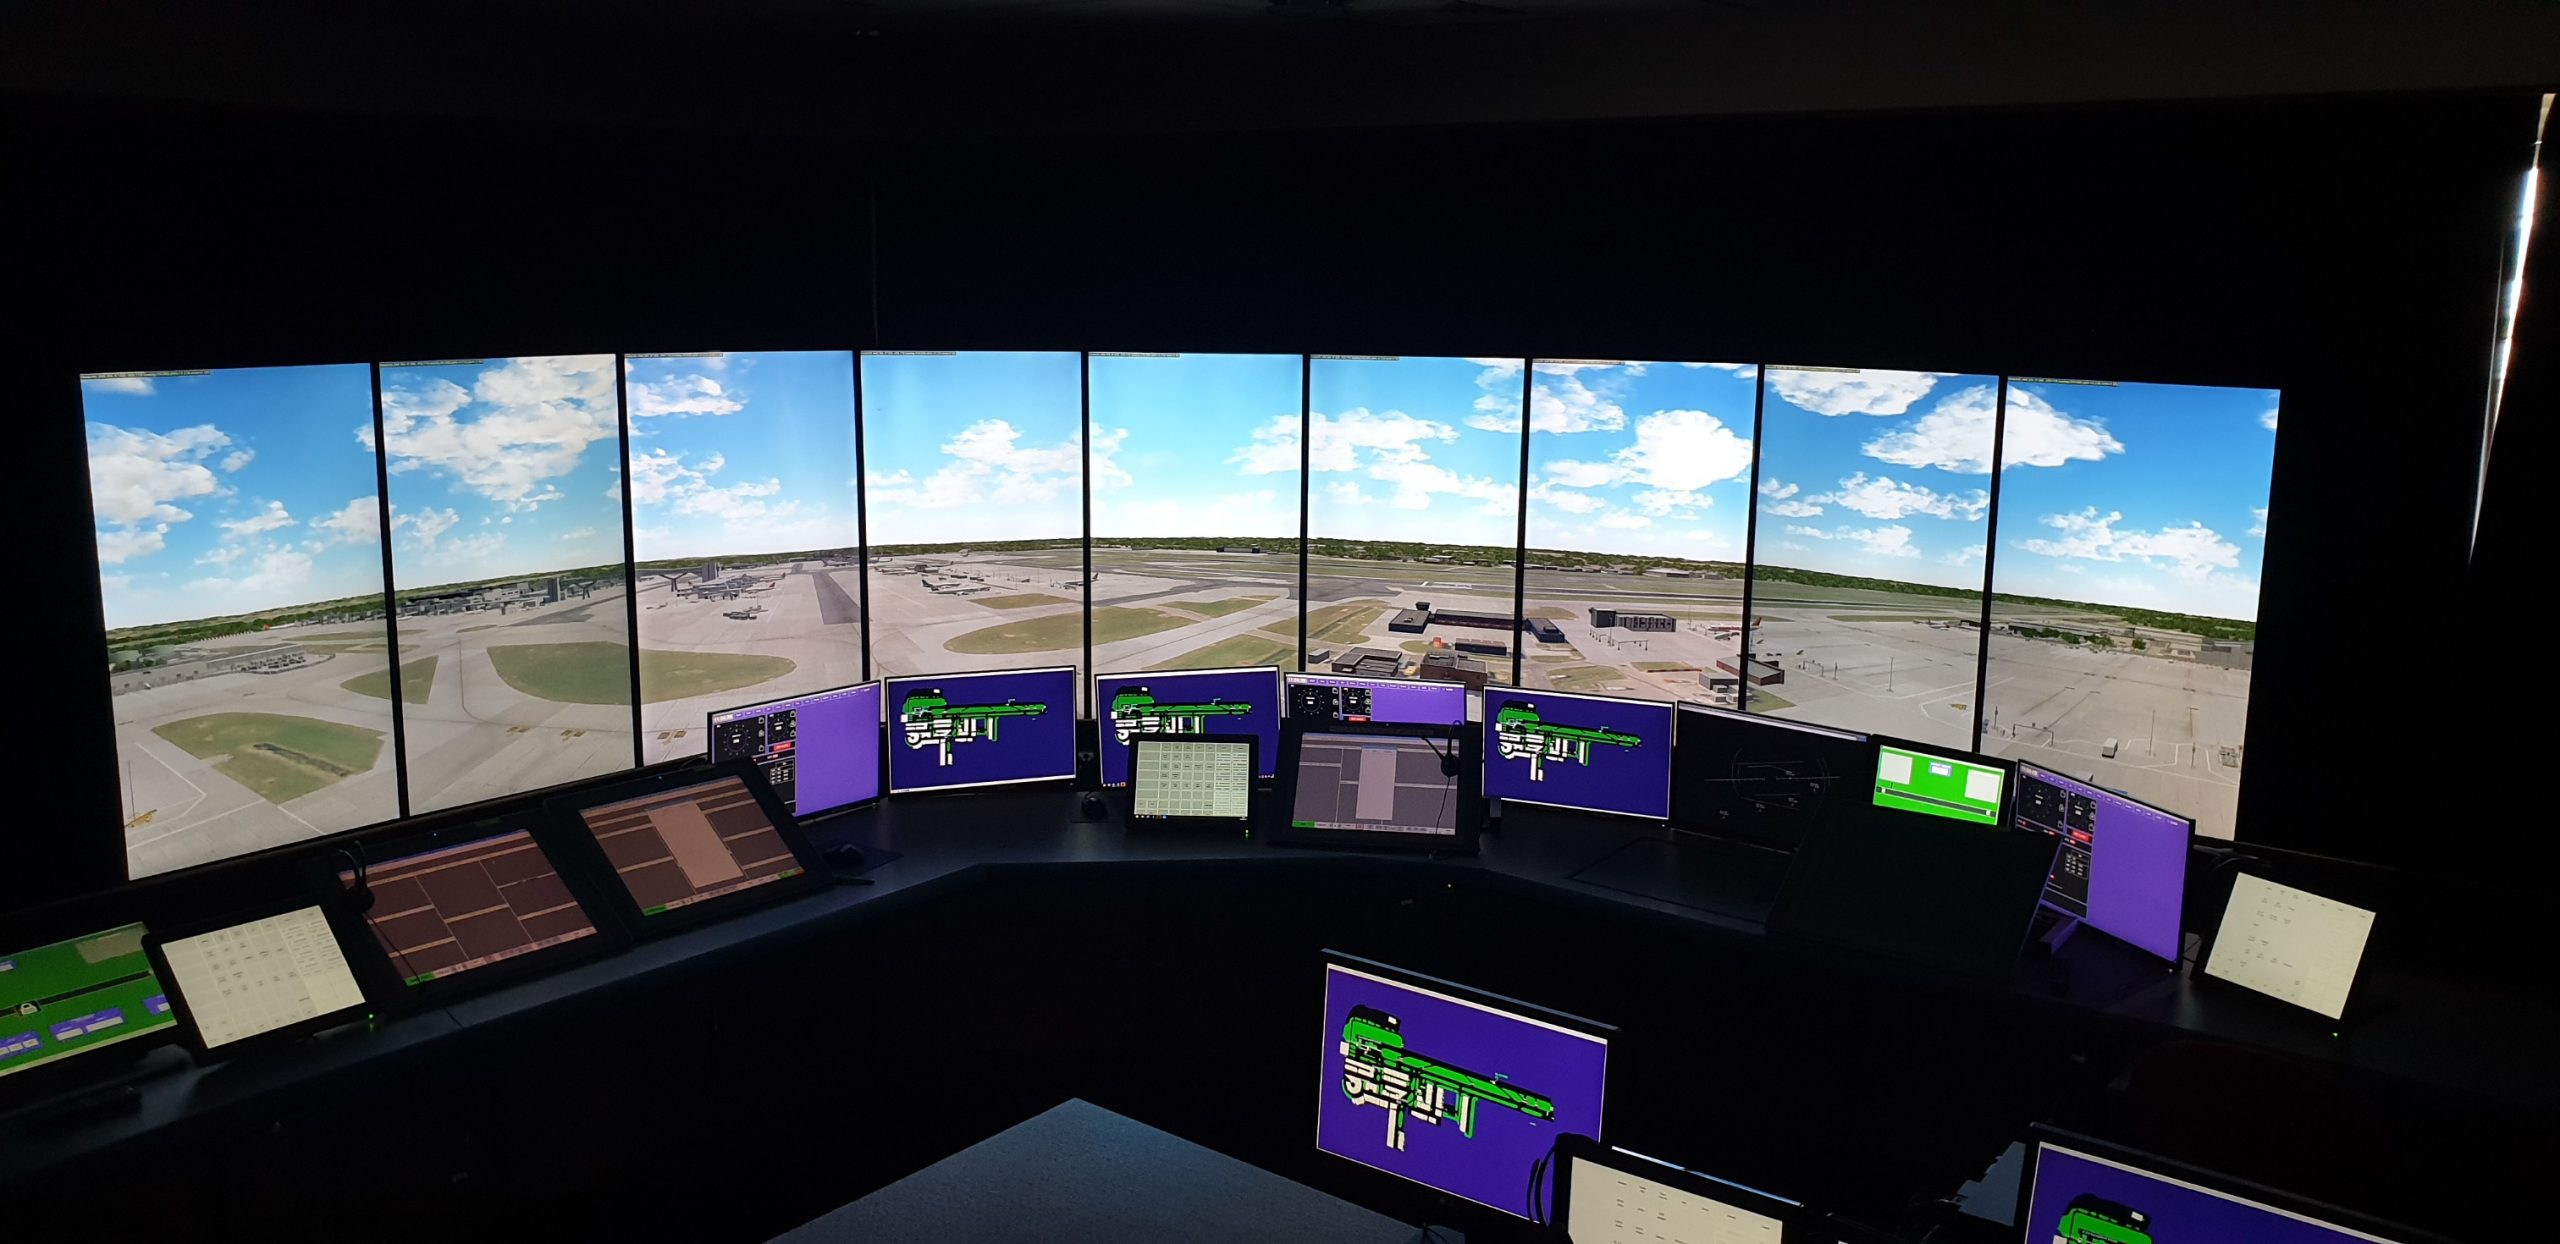 ANSL's state-of-the-art simulator